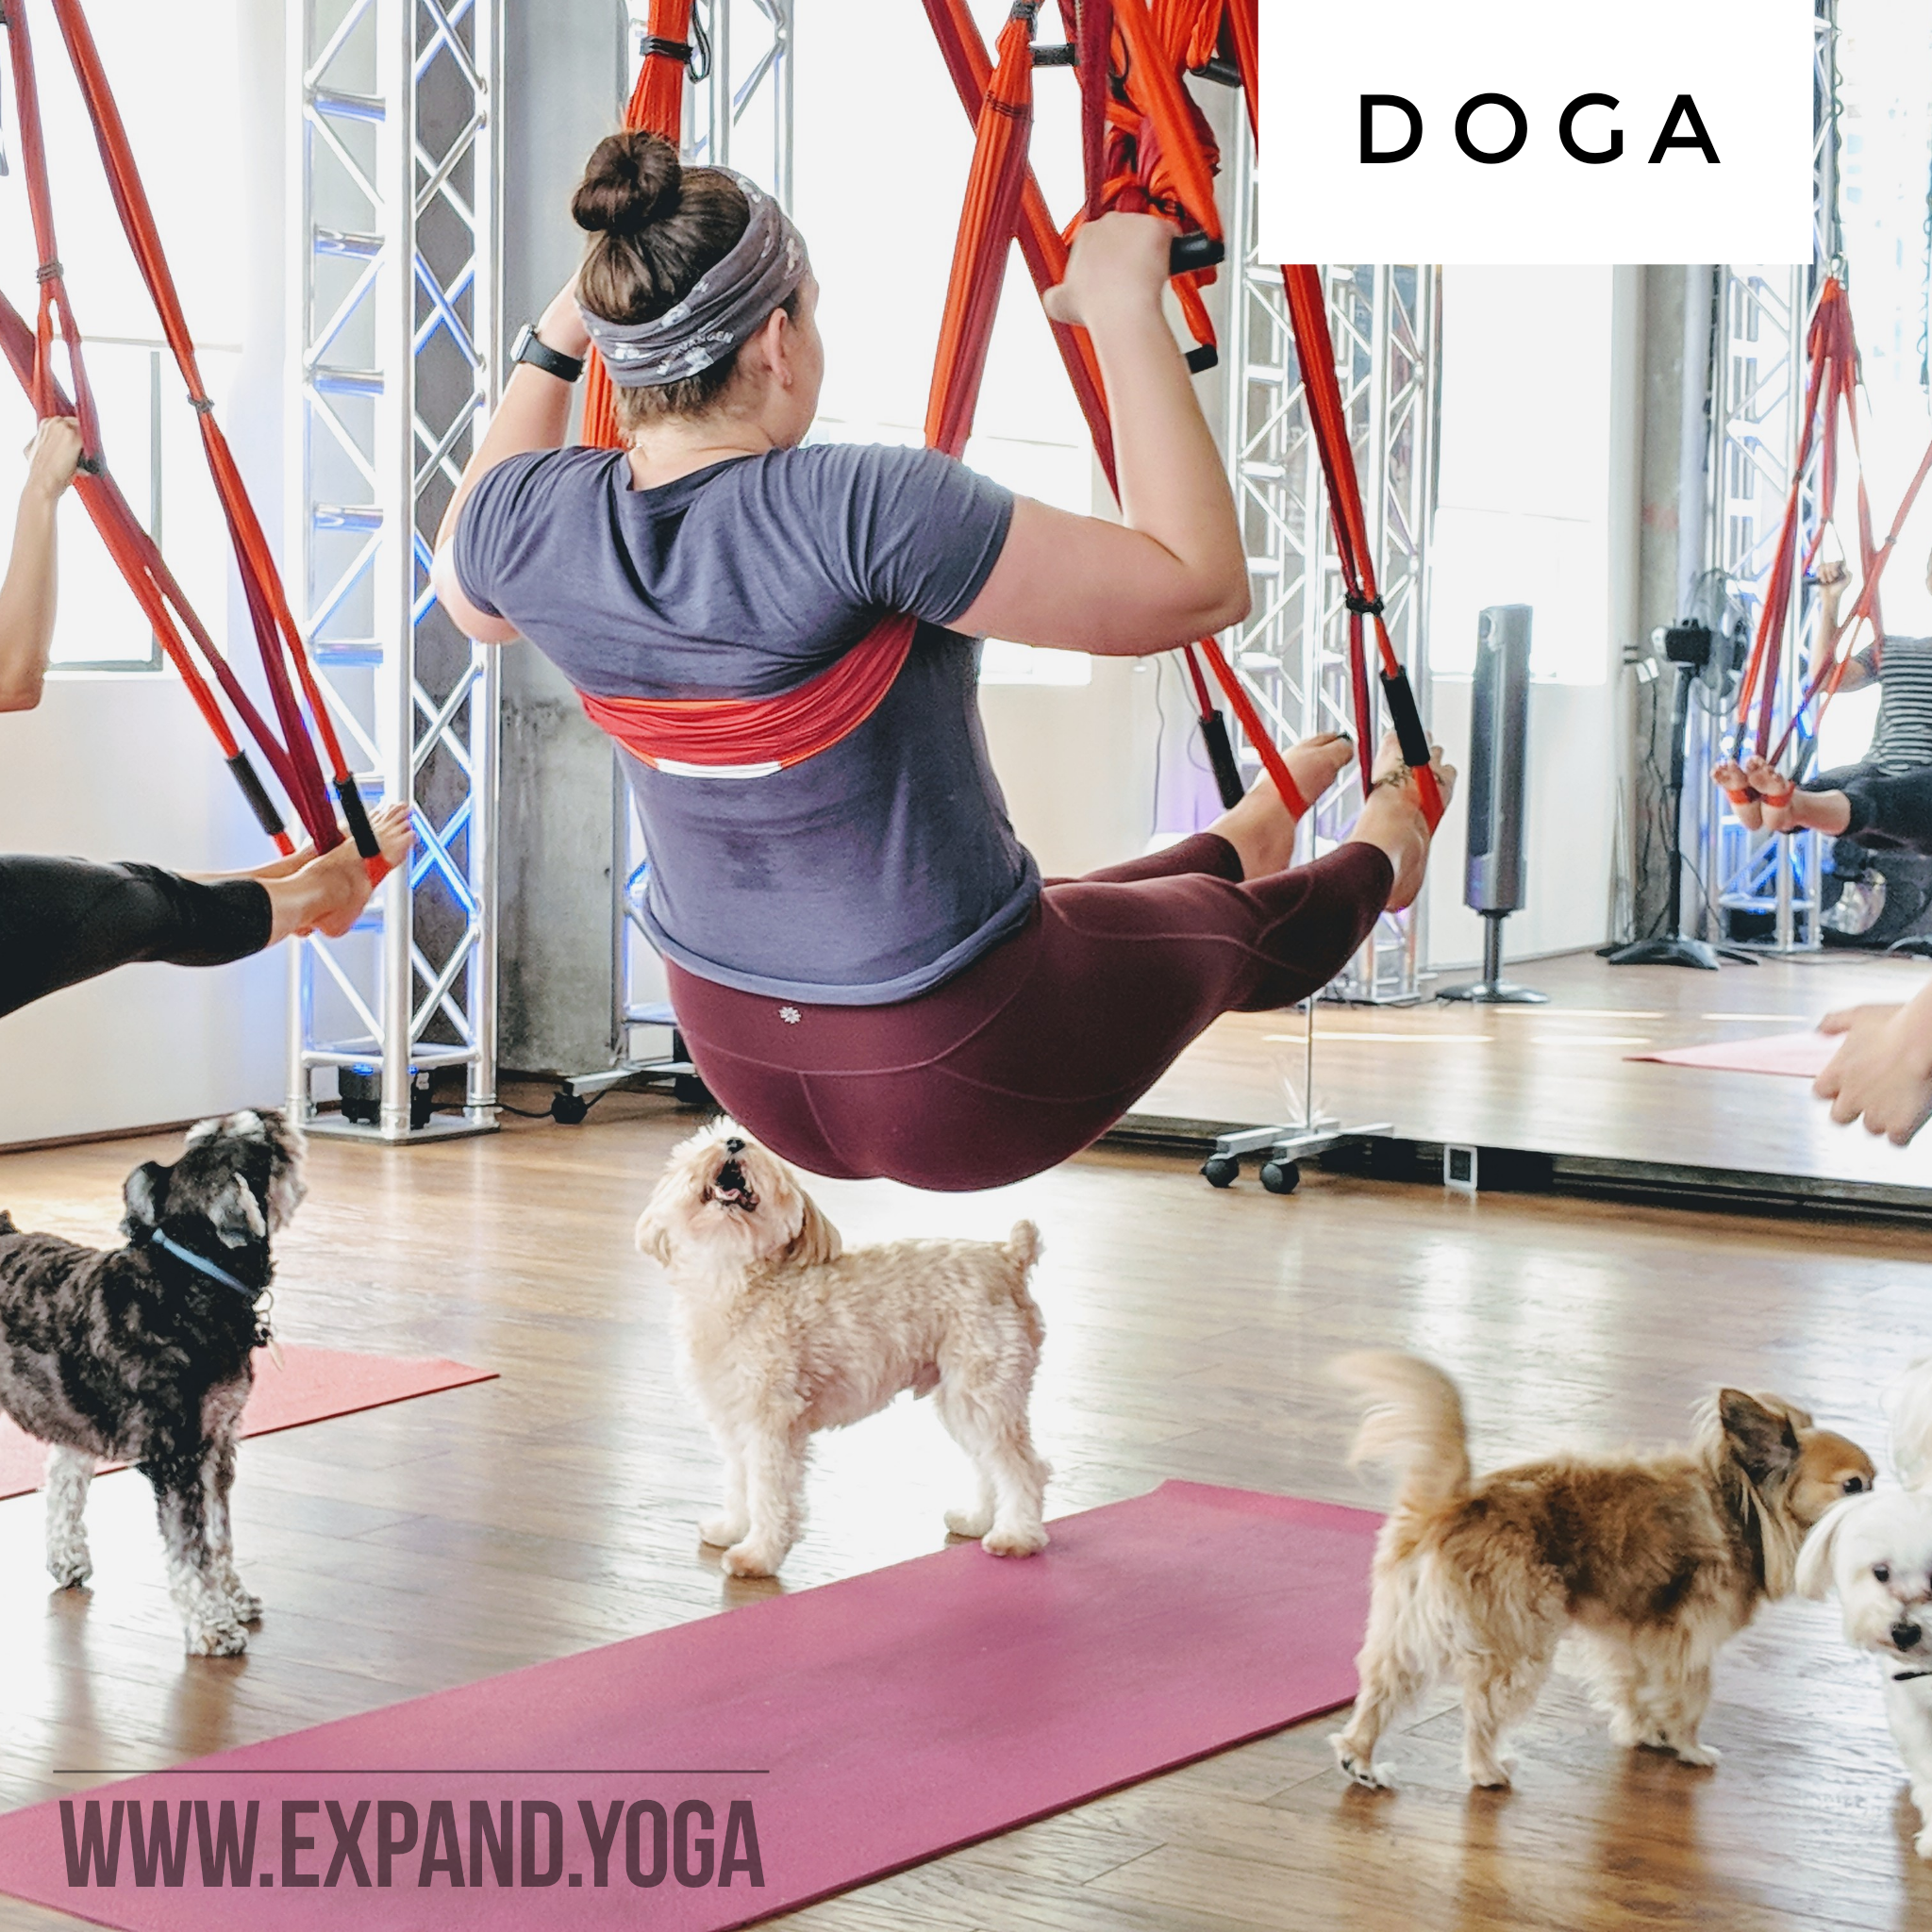 Expand DOGA Apr 15 (16)